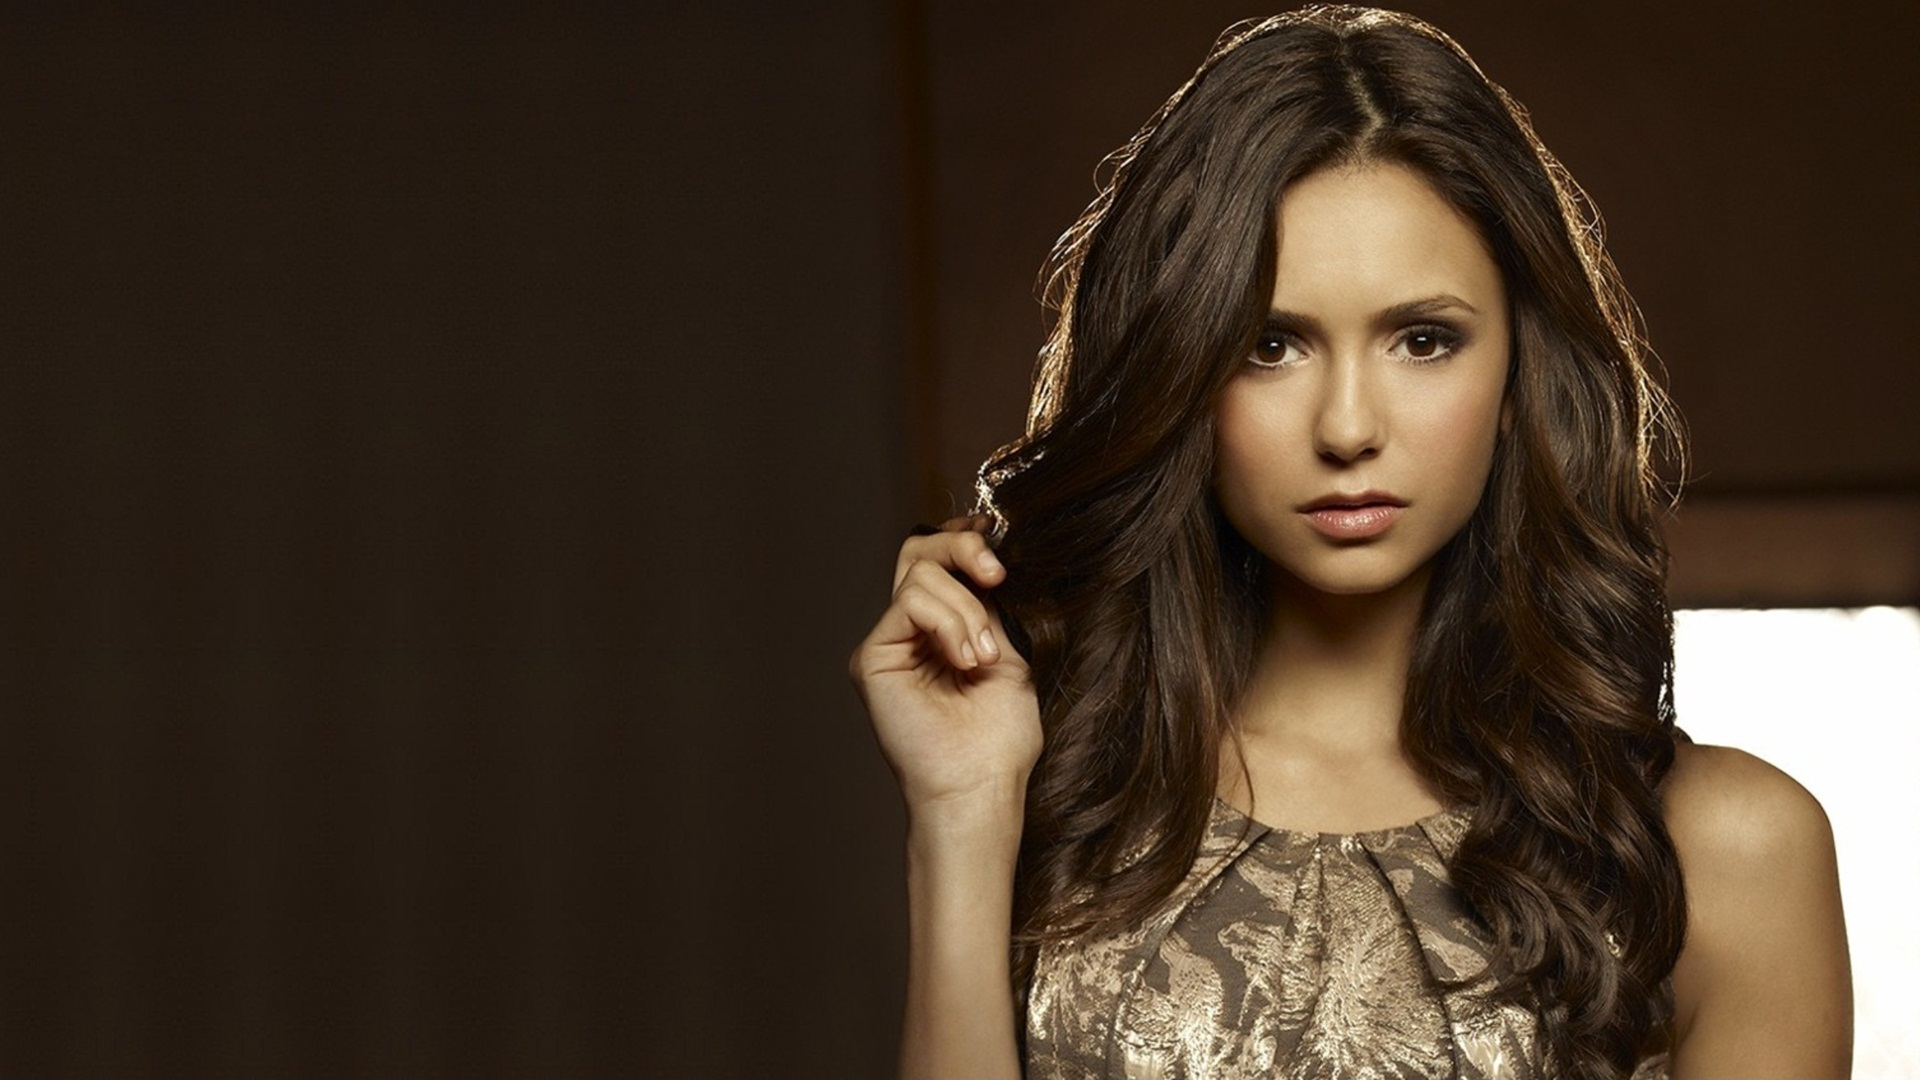 High Quality Image of Nina Dobrev » 1920x1080